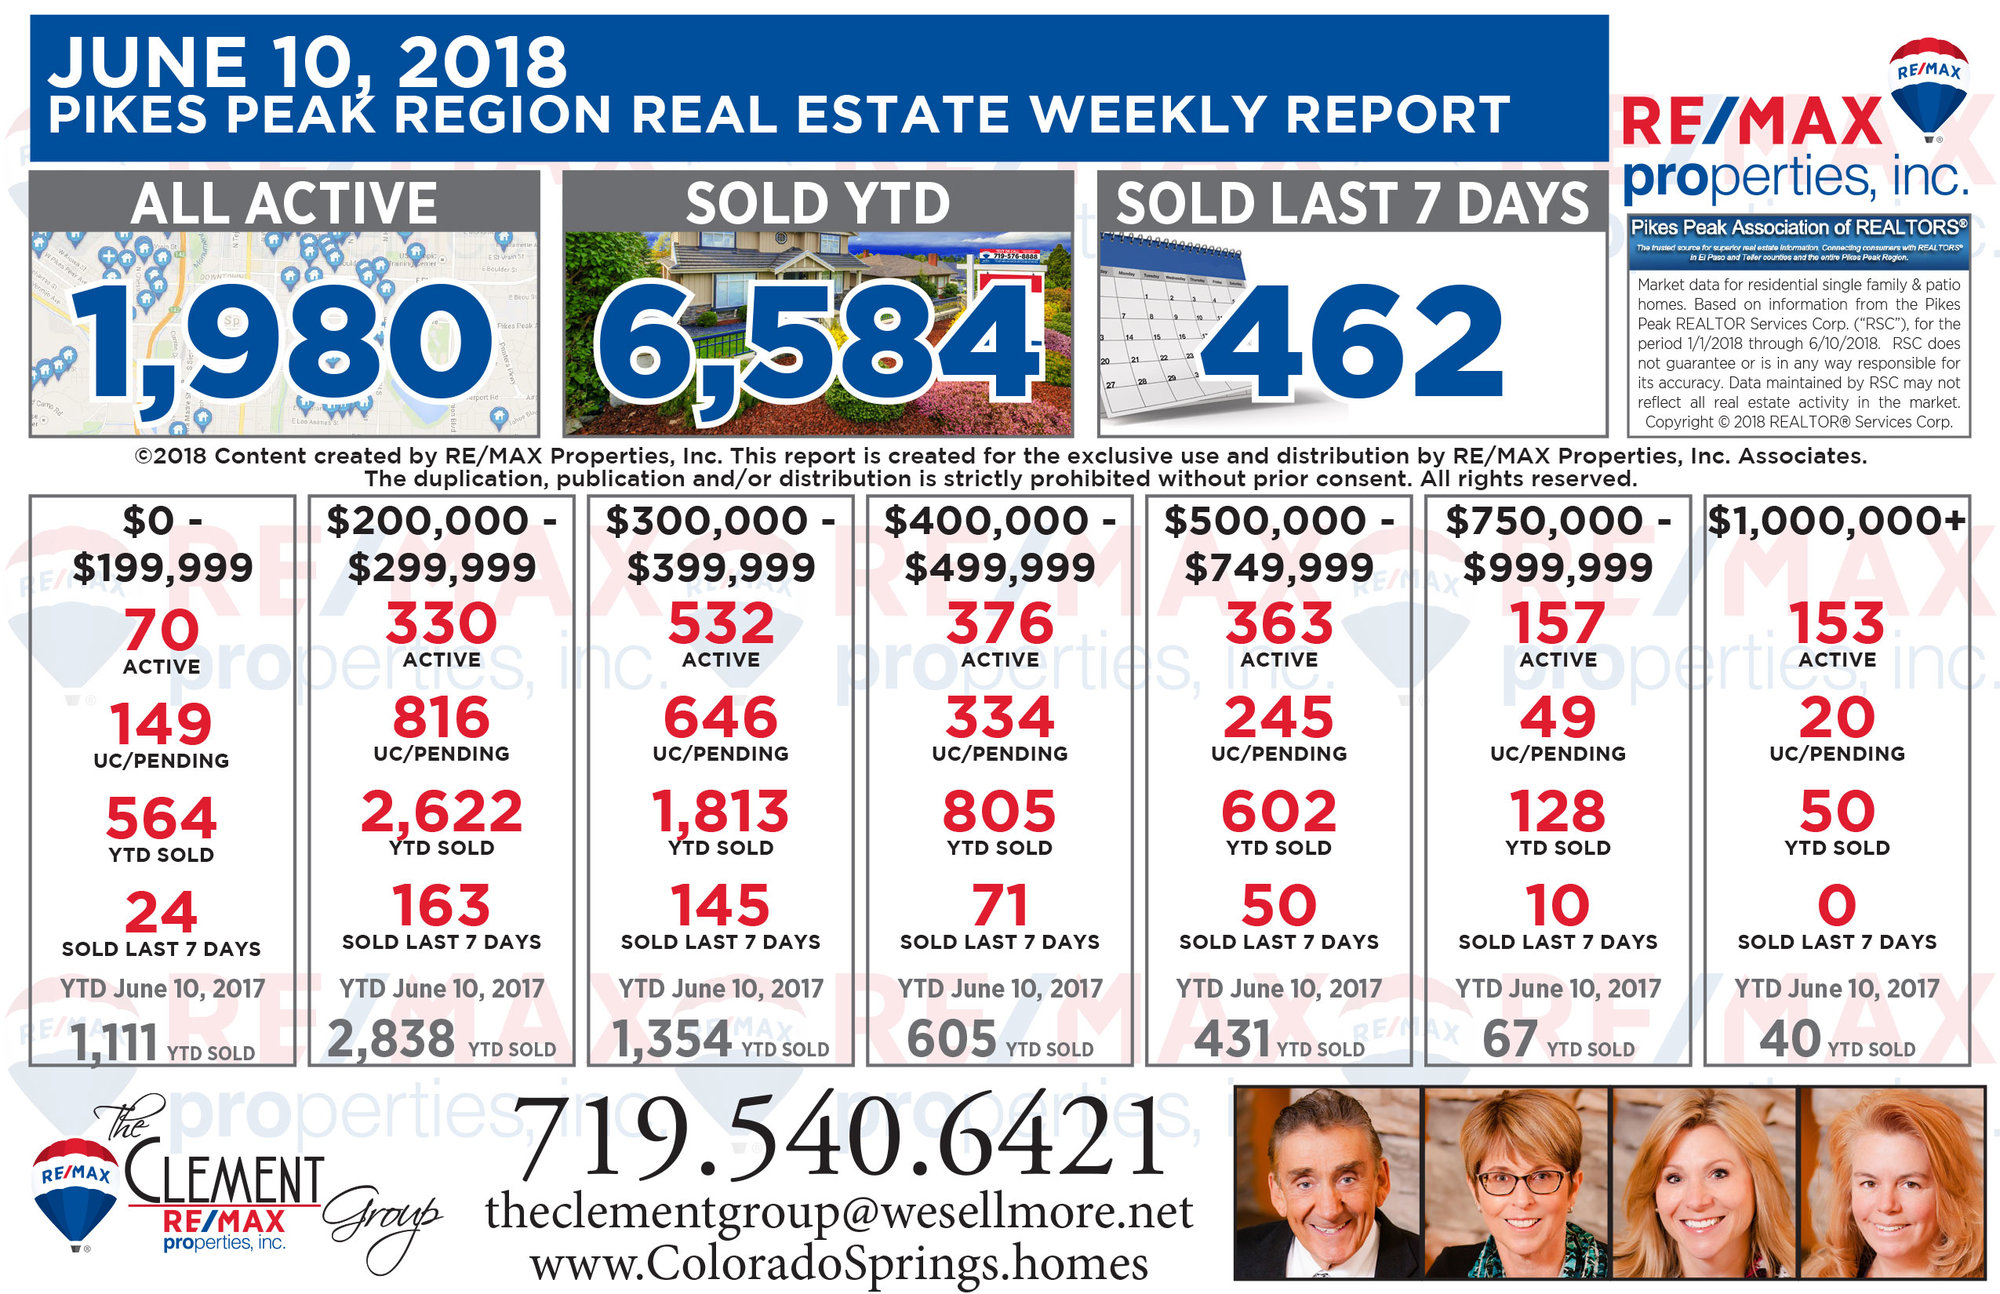 Colorado Springs Real Estate Market Weekly Update - June 10, 2018